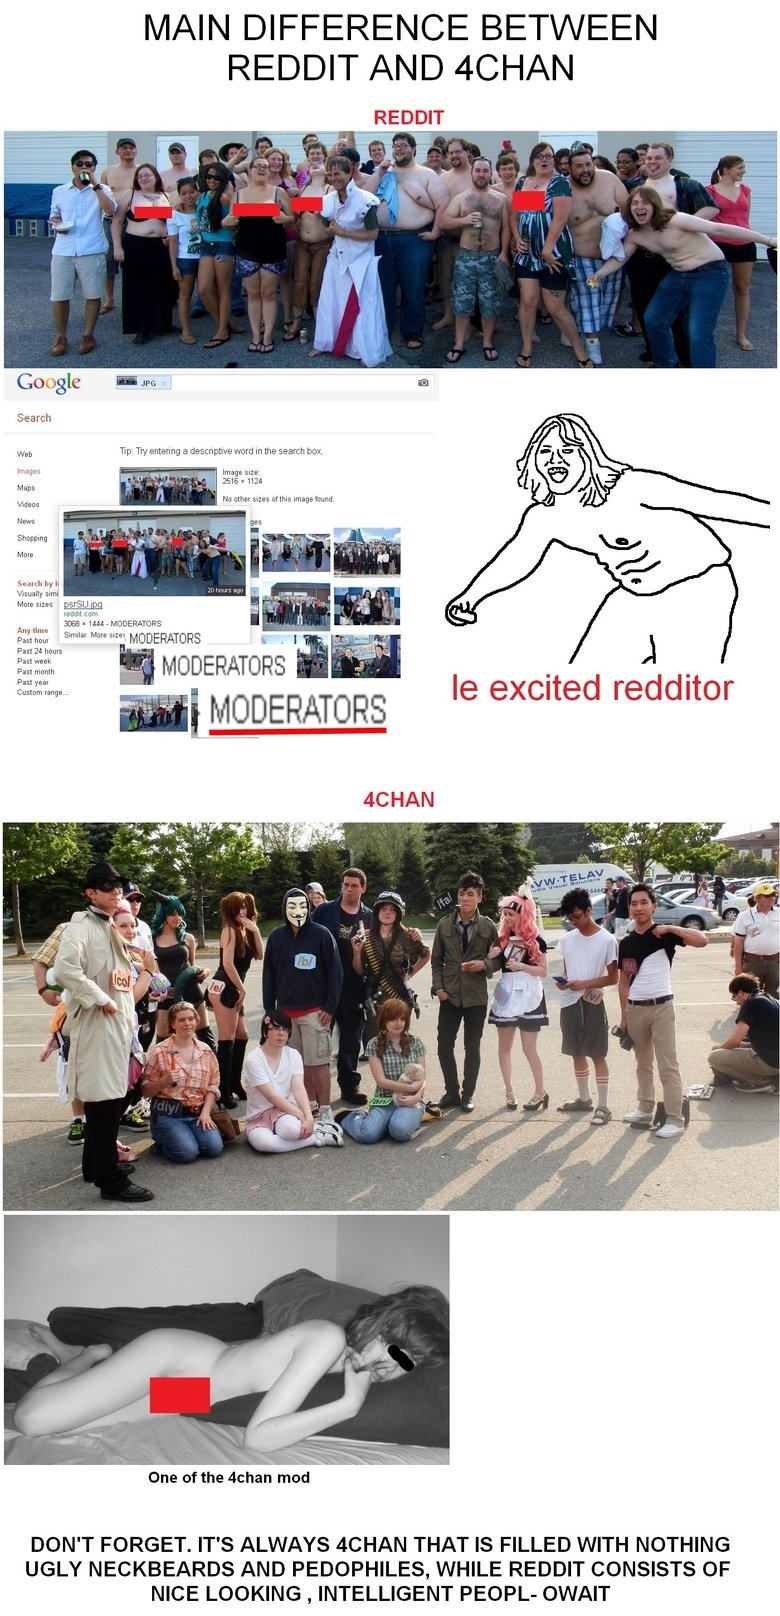 "4chan vs Reddit. I hope this won't get deleted again, boobies ain't visible. MAIN DIFFERENCE BETWEEN REDDIT AND YCHAN REDDIT Google we 'r is Sm/ M ""I MODERATORS"